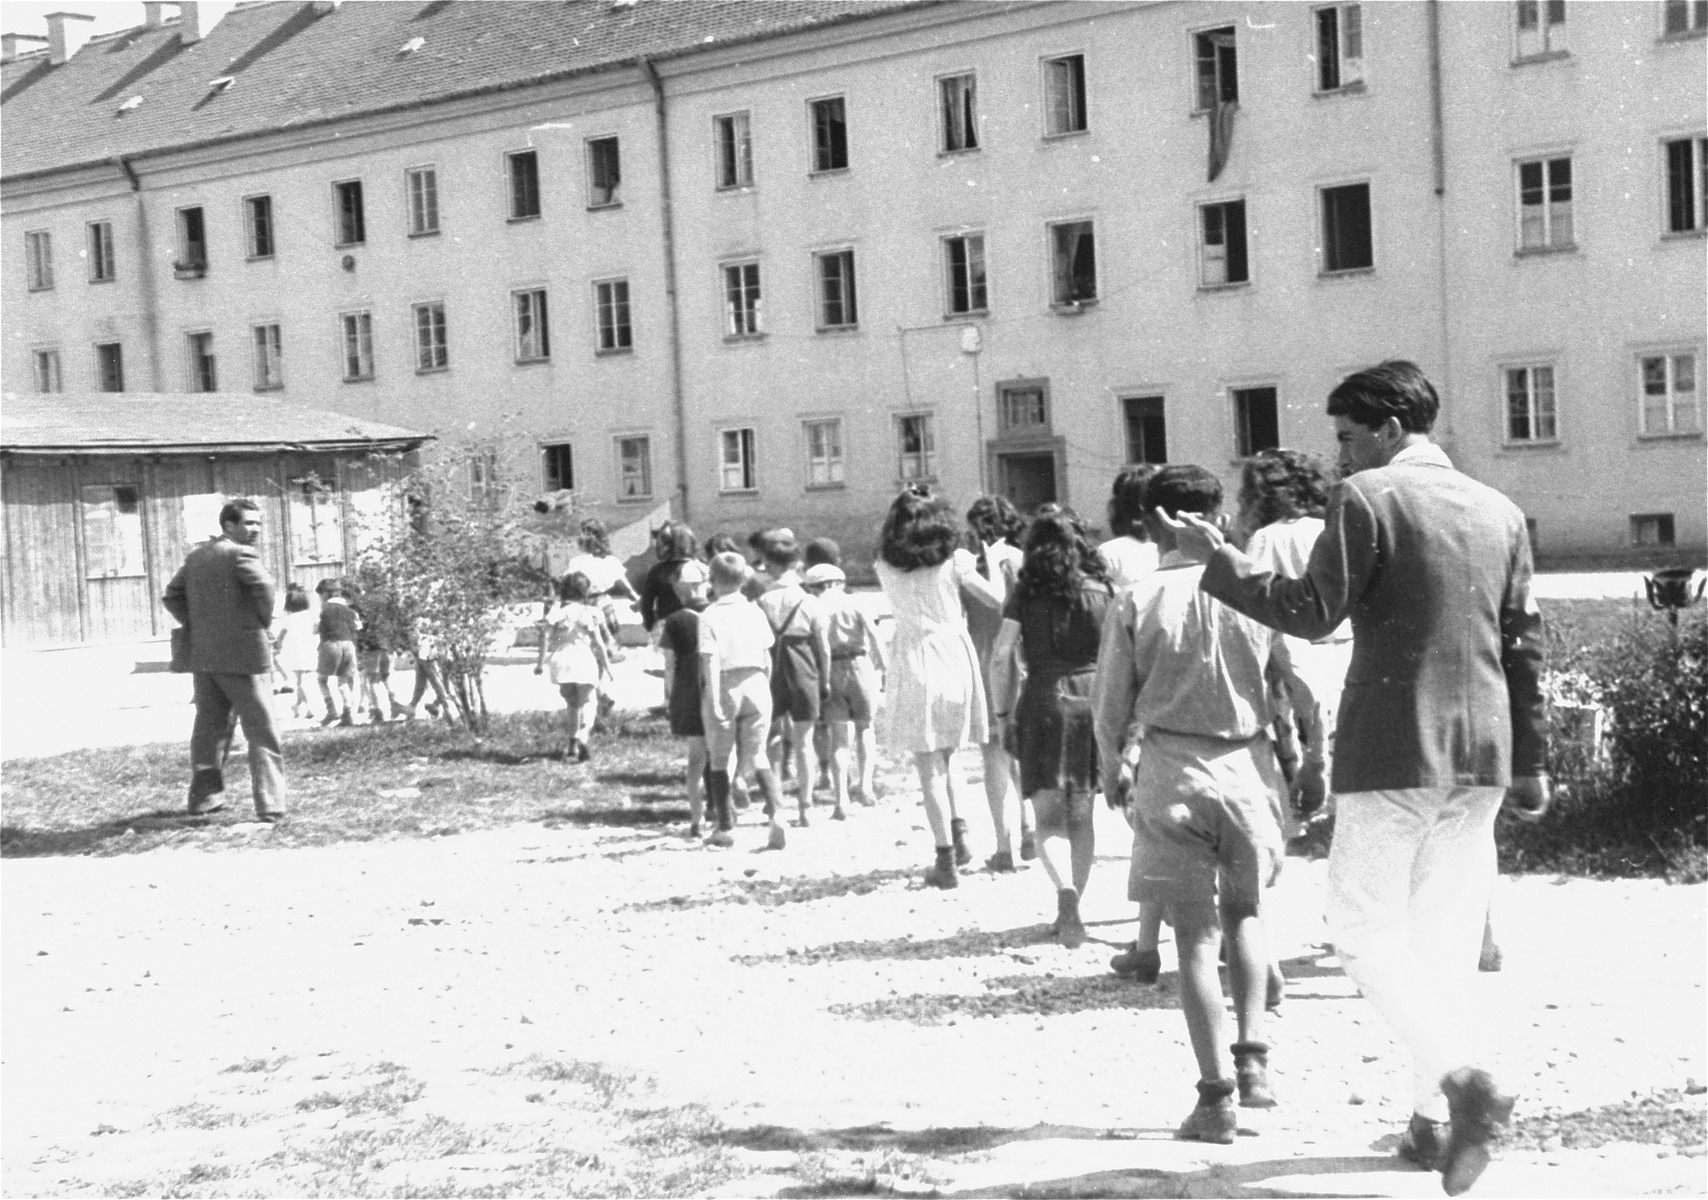 Children walk toward the food distribution building in Bindermichl DP camp.  Pictured on the far left with is back to the camera is Hersch Biederman, who worked at the food distribution warehouse.